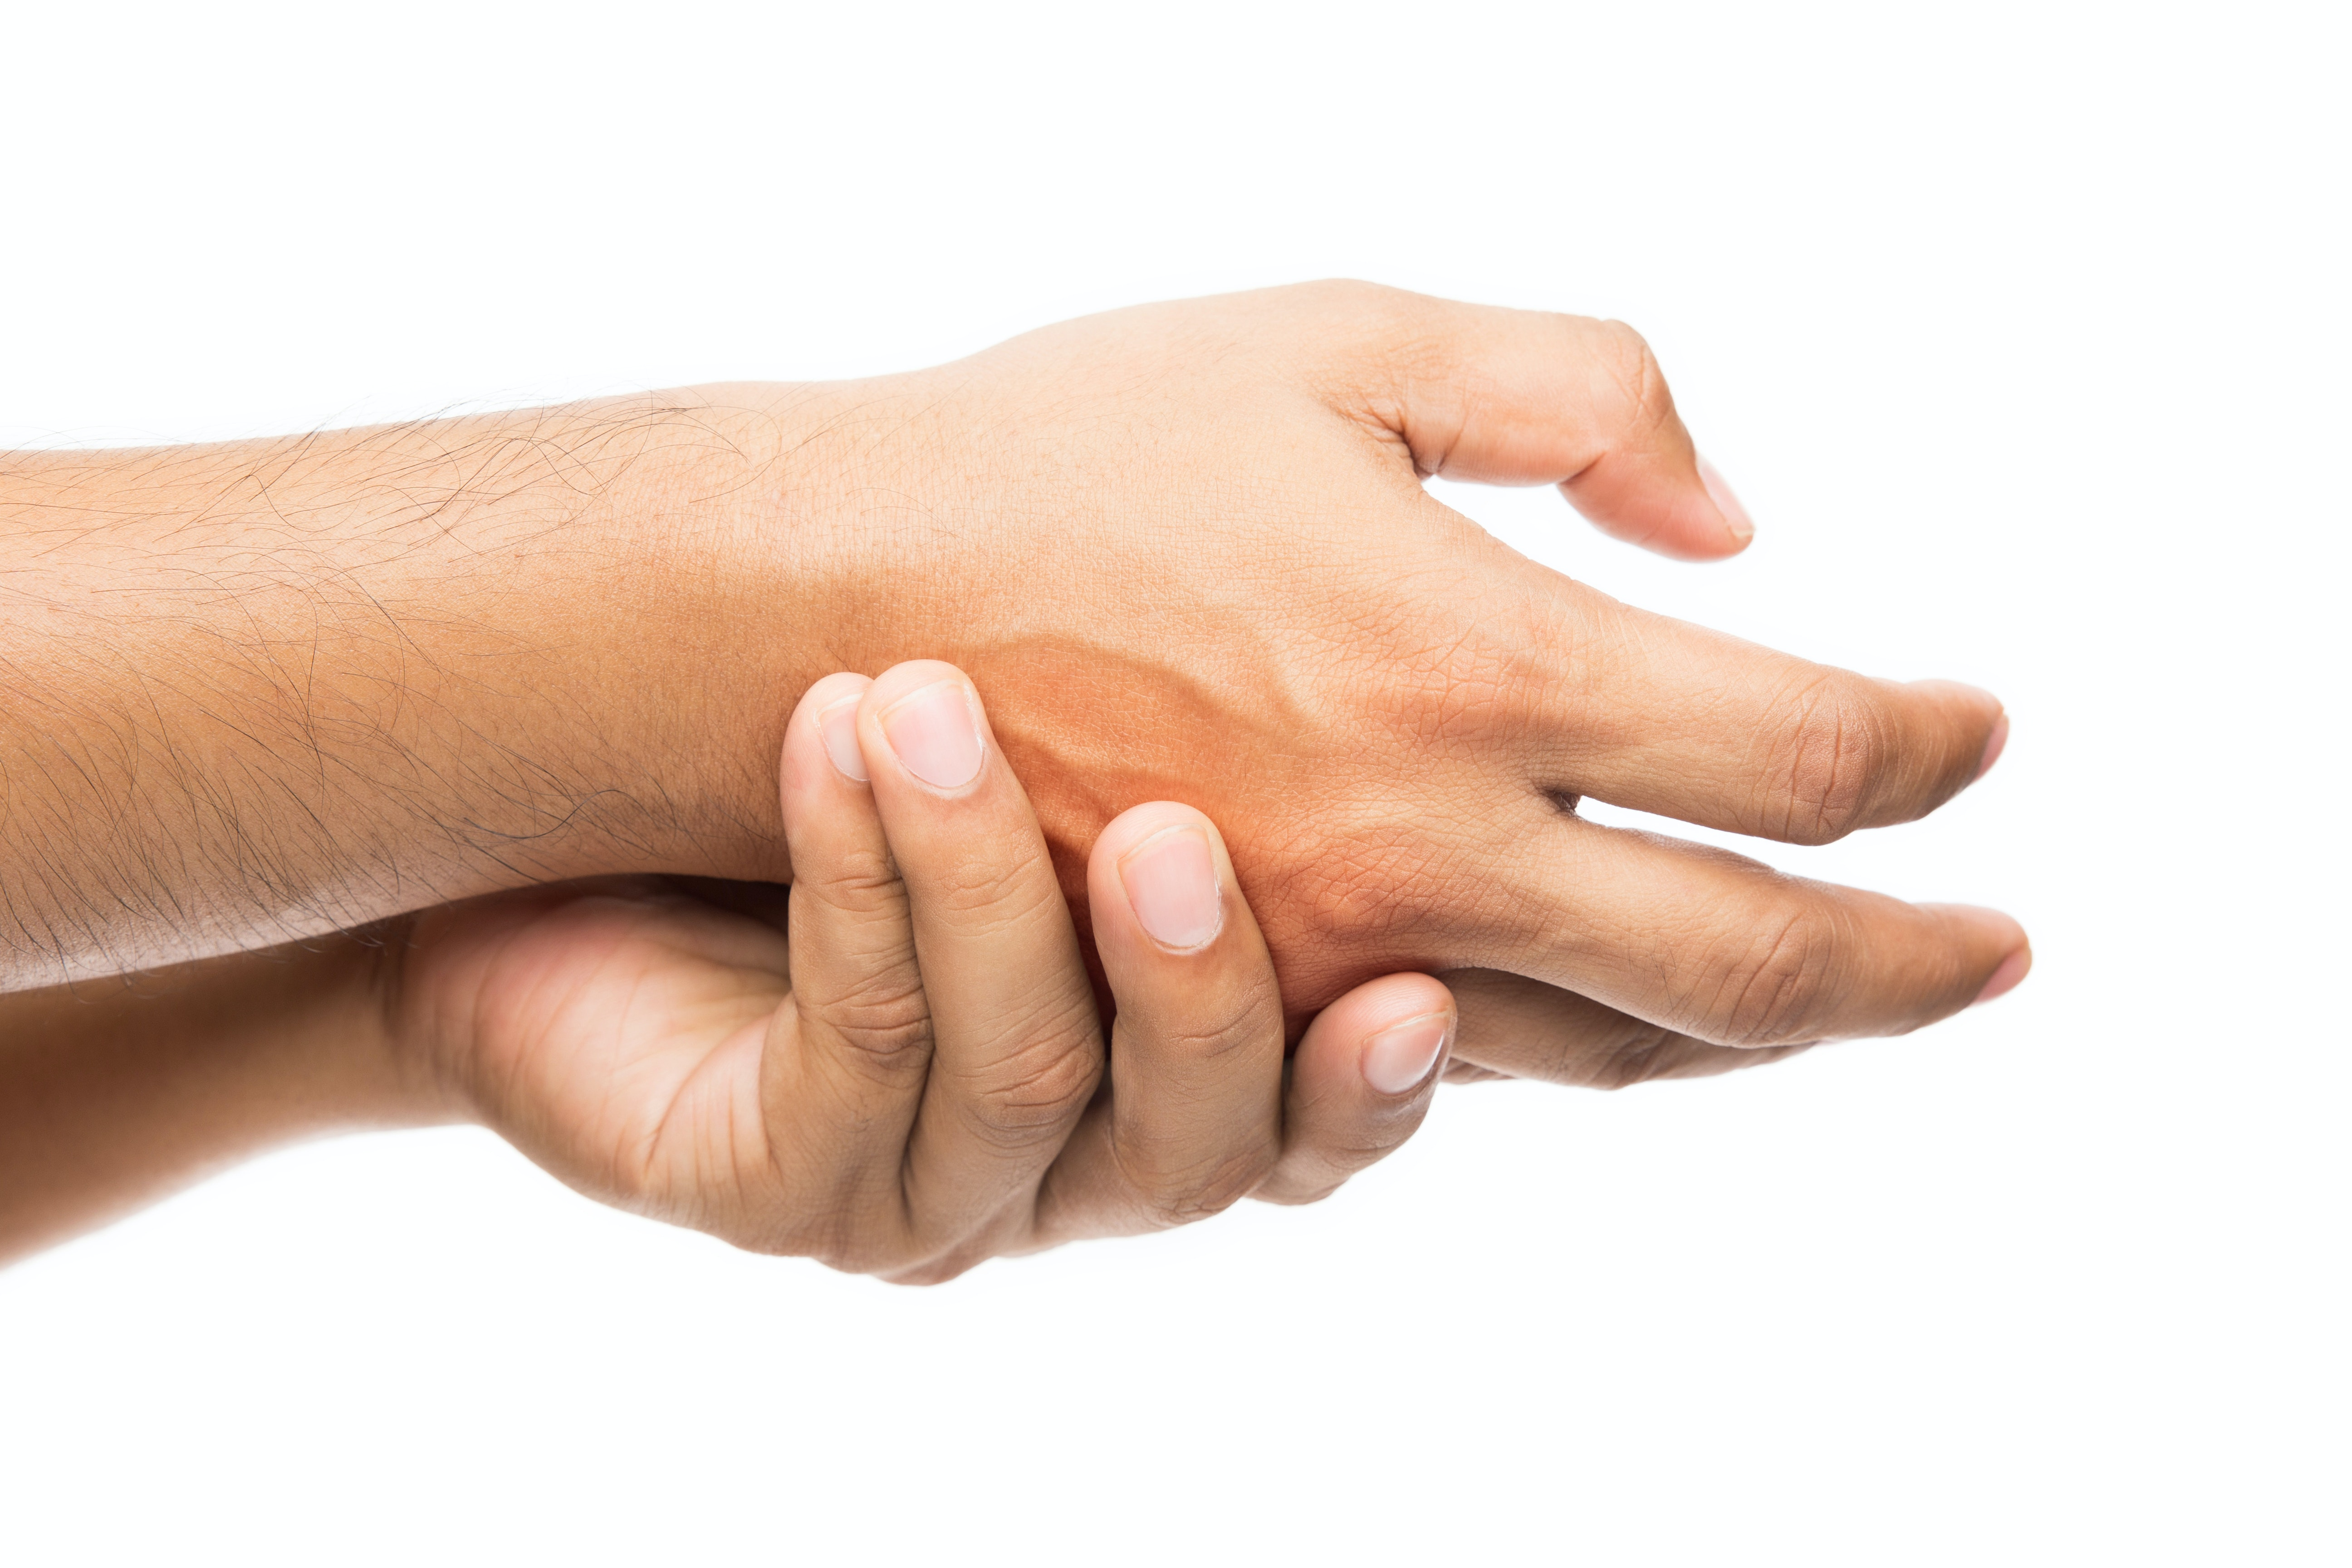 An image depicting a person suffering from thumb numbness symptoms